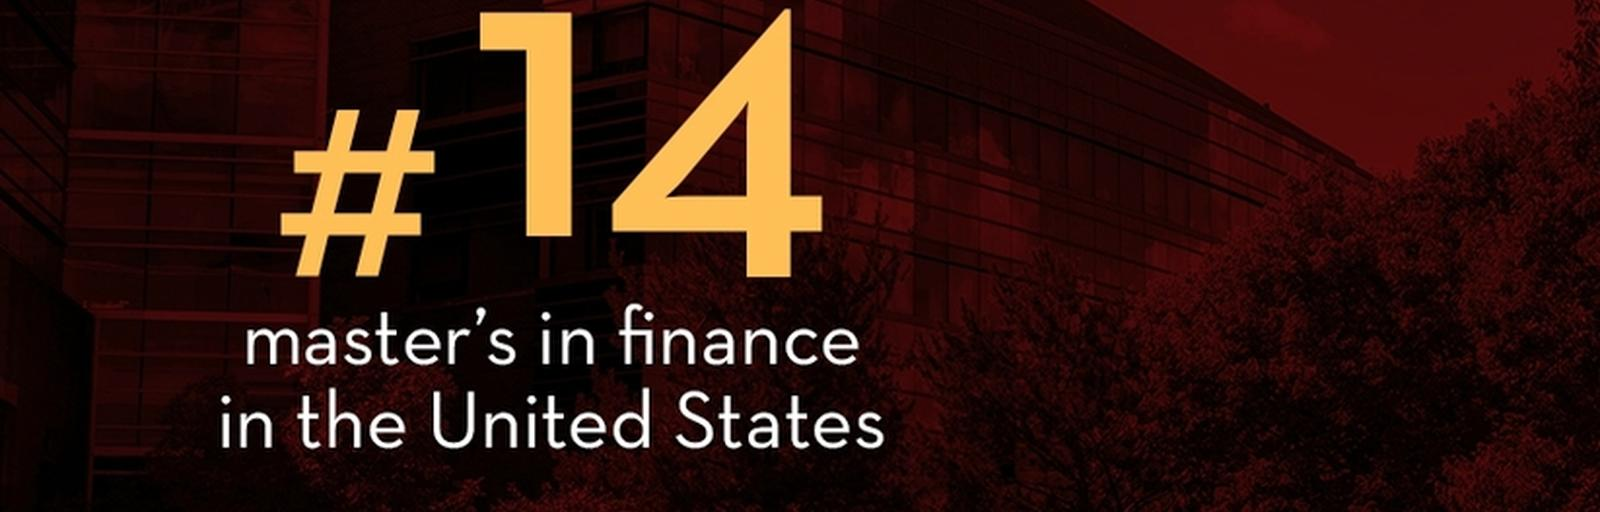 Master's in Finance Ranking